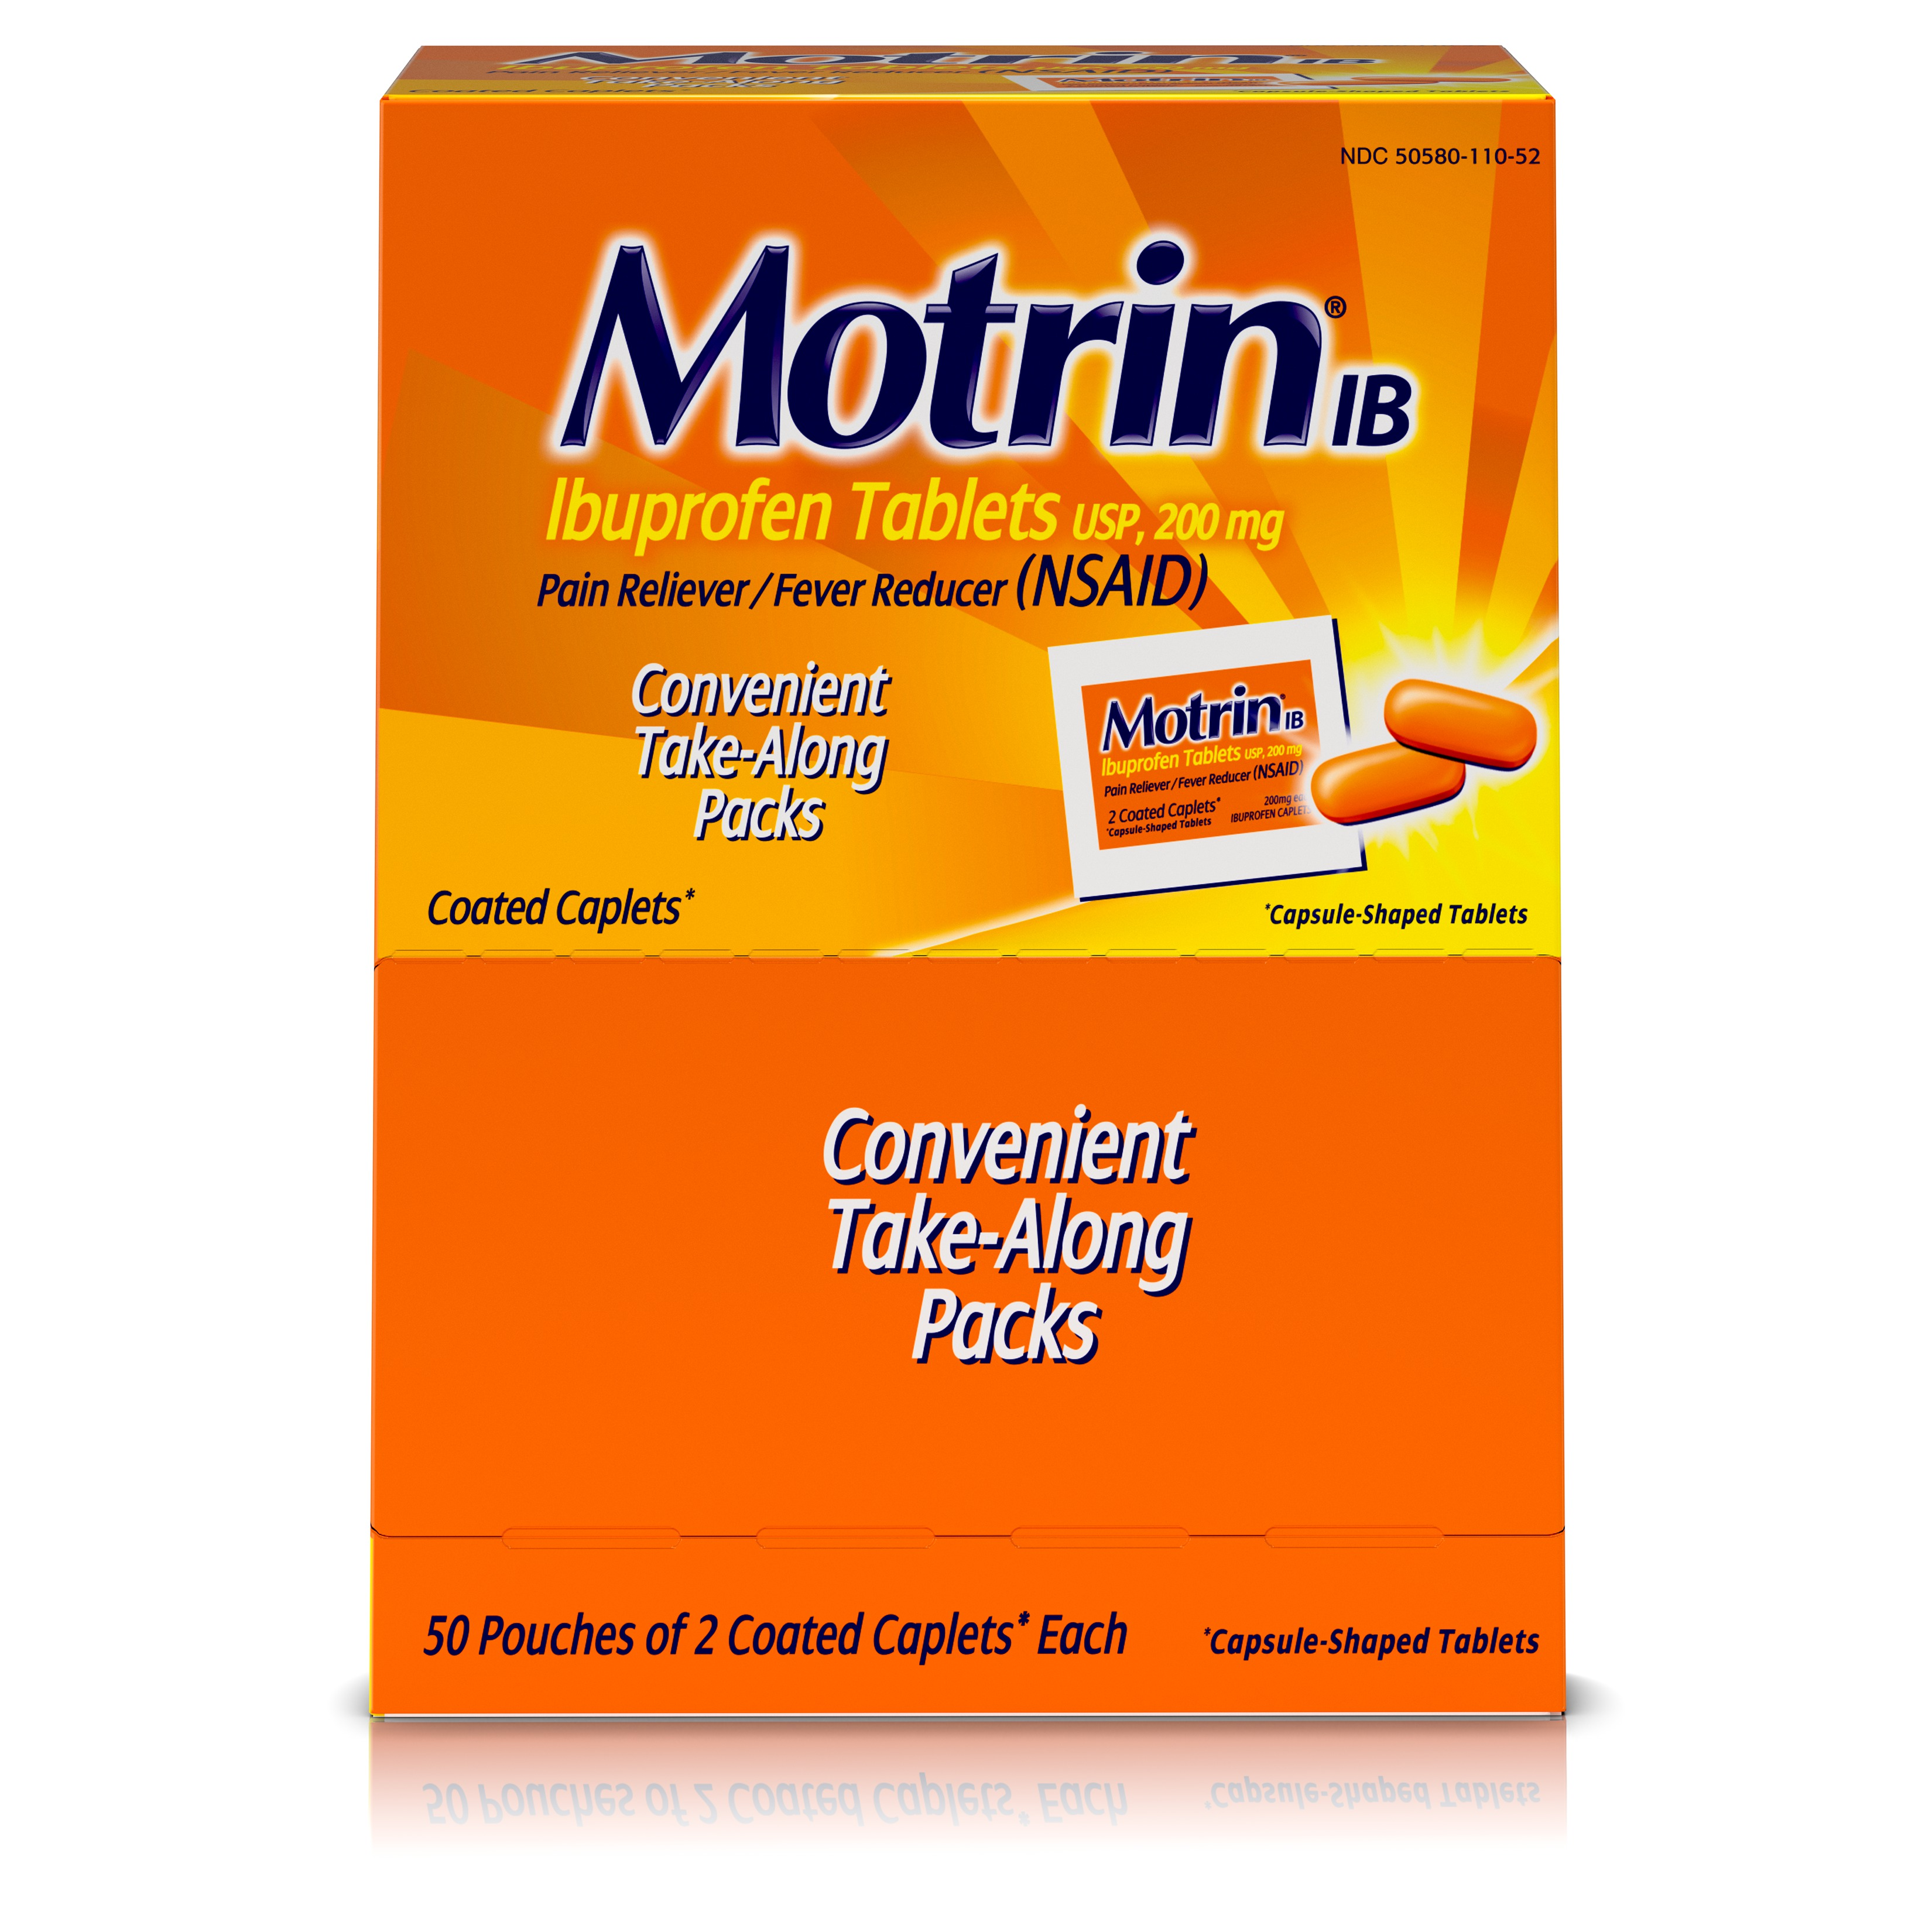 Motrin IB Liquid Gels, Ibuprofen, Aches and Pain Relief, 50 Count, Pack of 2